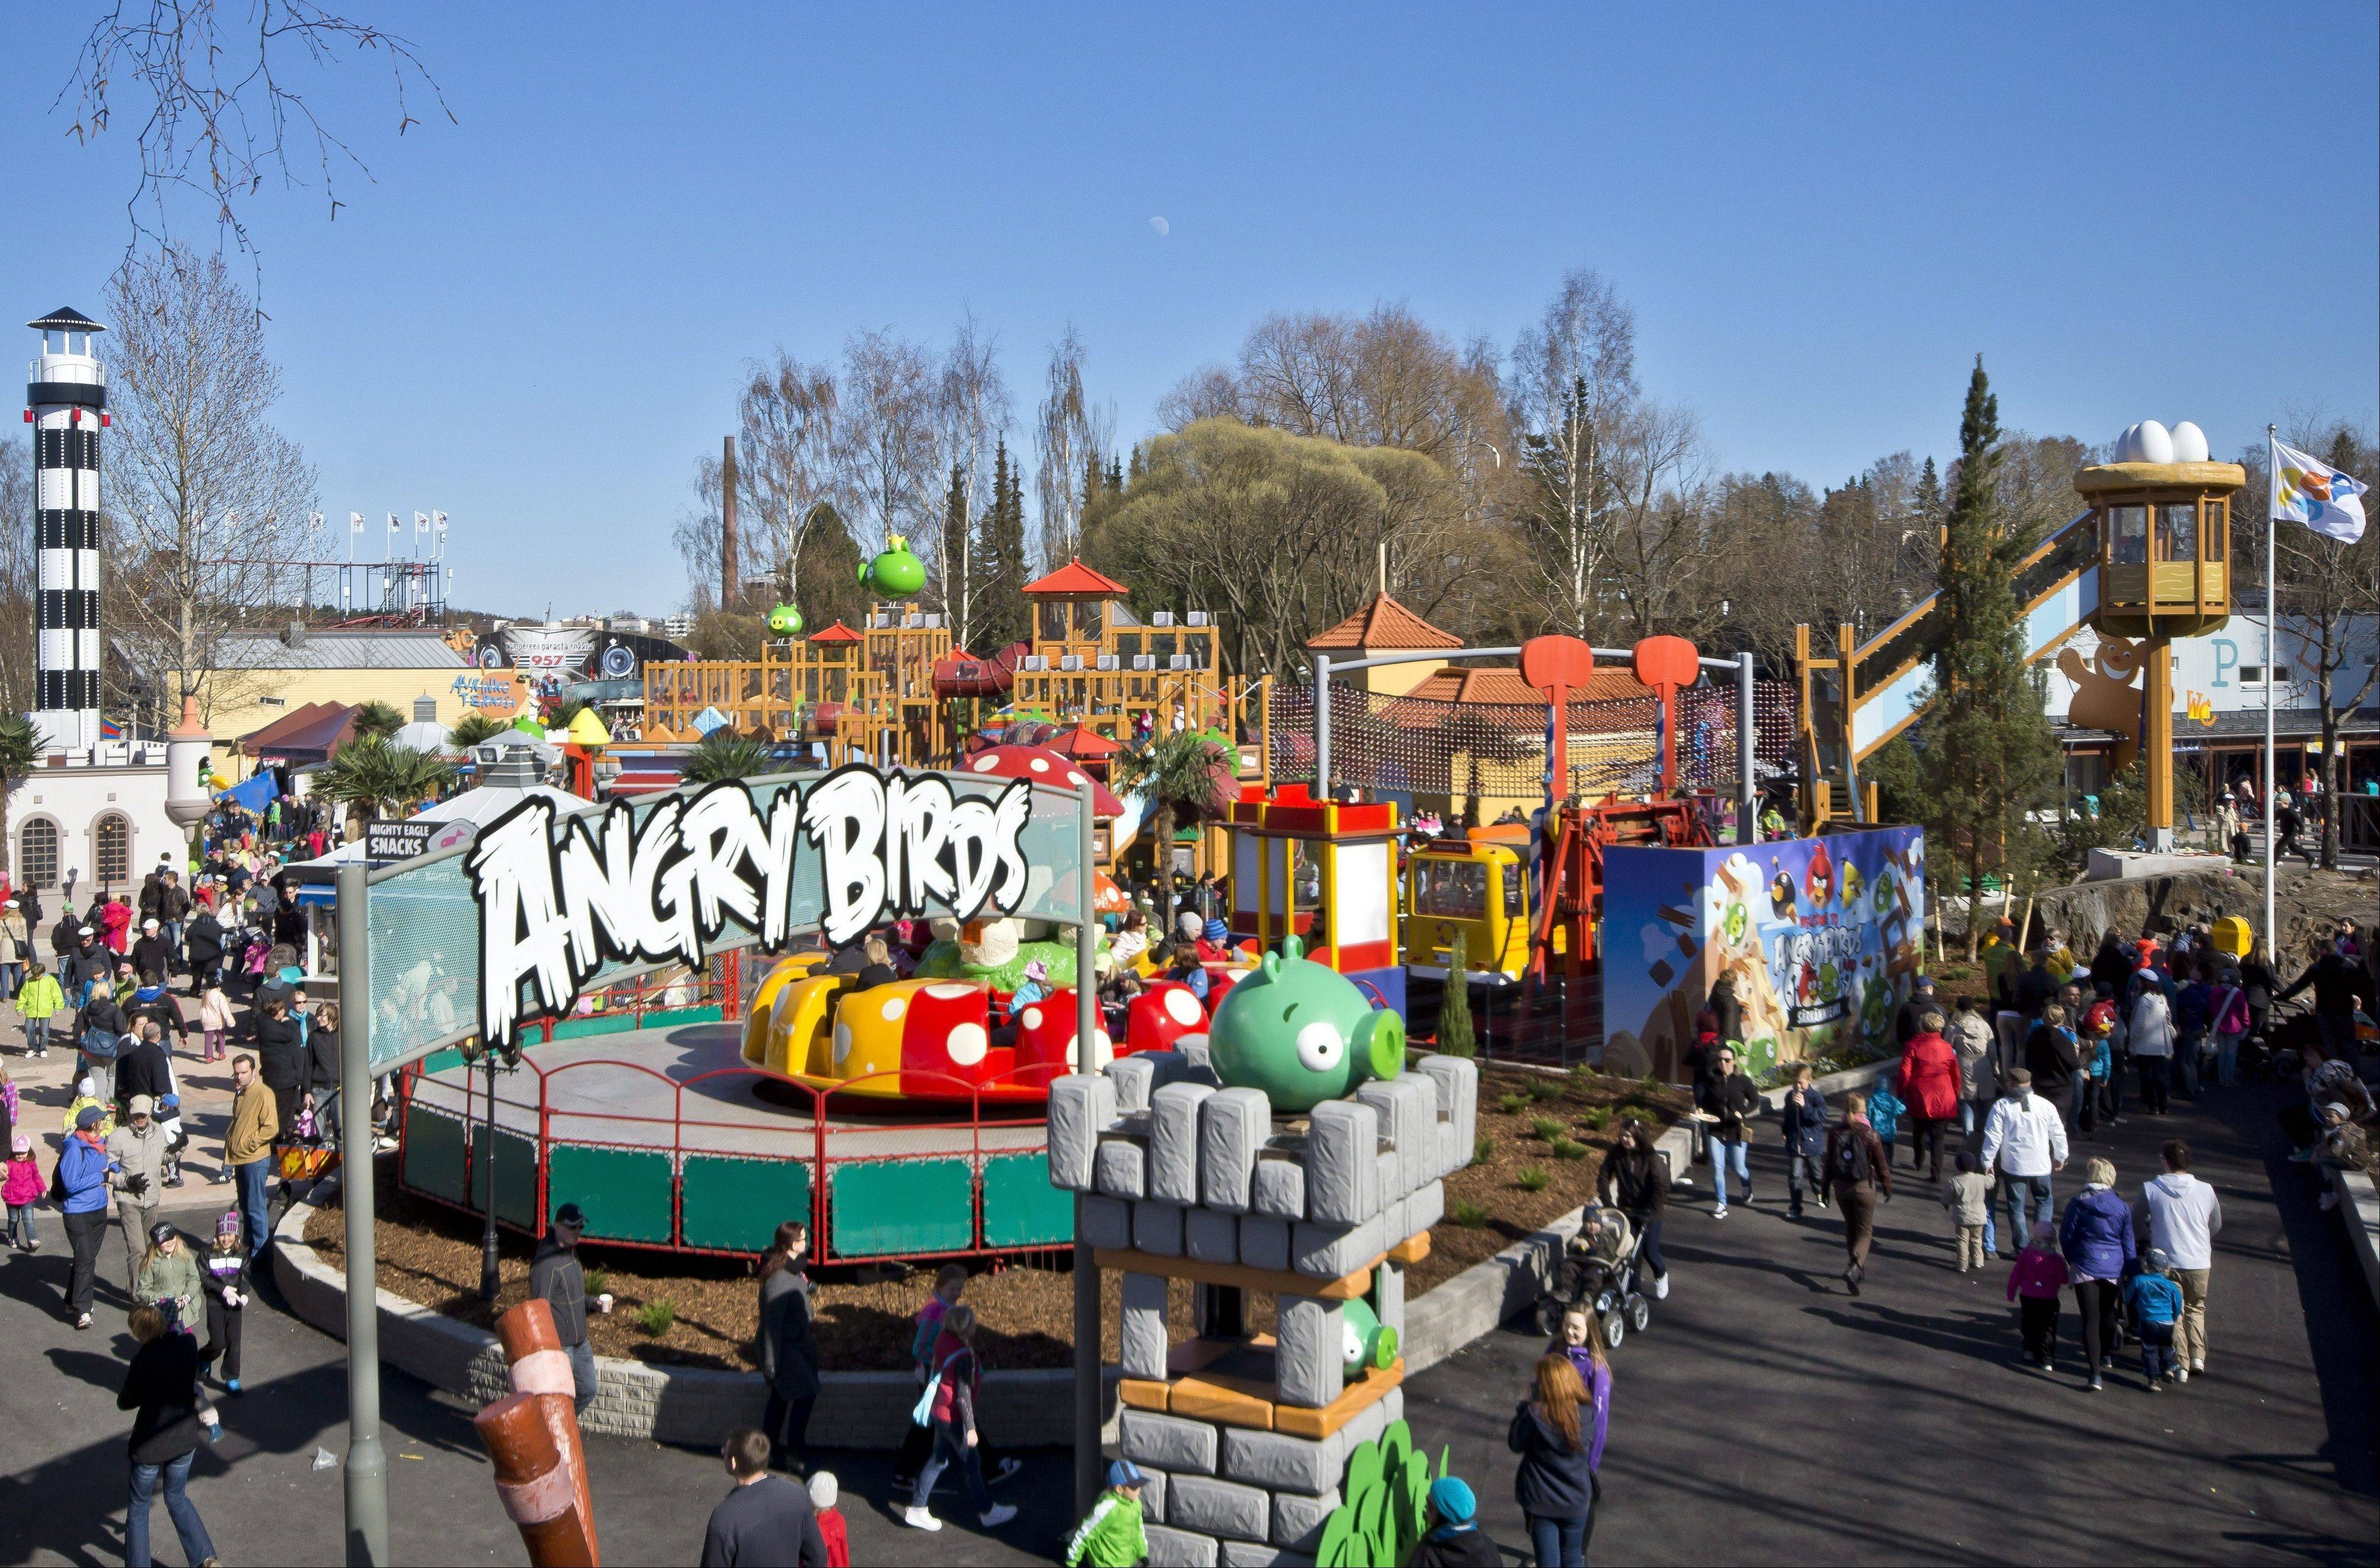 Angry Birds Land at the Sarkanniemi amusement park in Tampere, Finland.